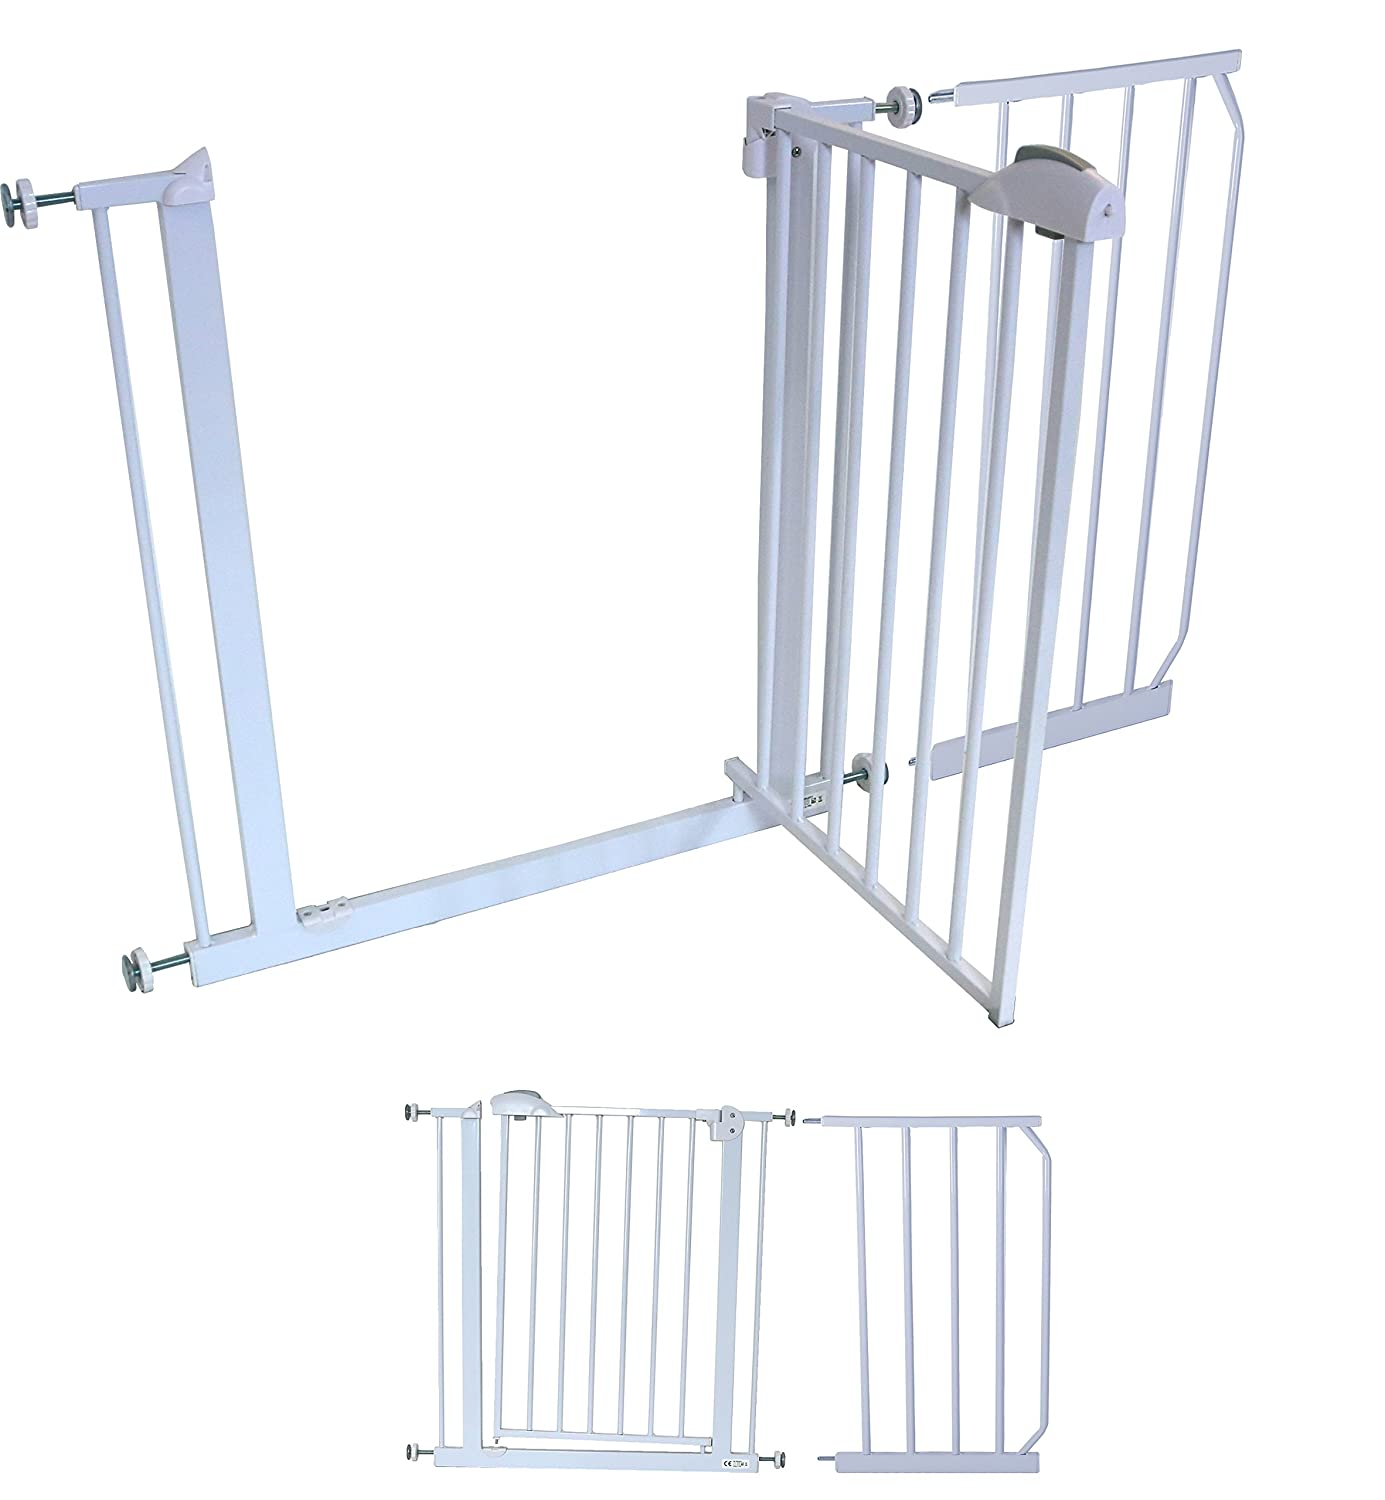 iSafe DeLuxe Stair Gate 90° STOP OPEN & Auto-Close StairGate (+ 30 CM Extension) AutoClose